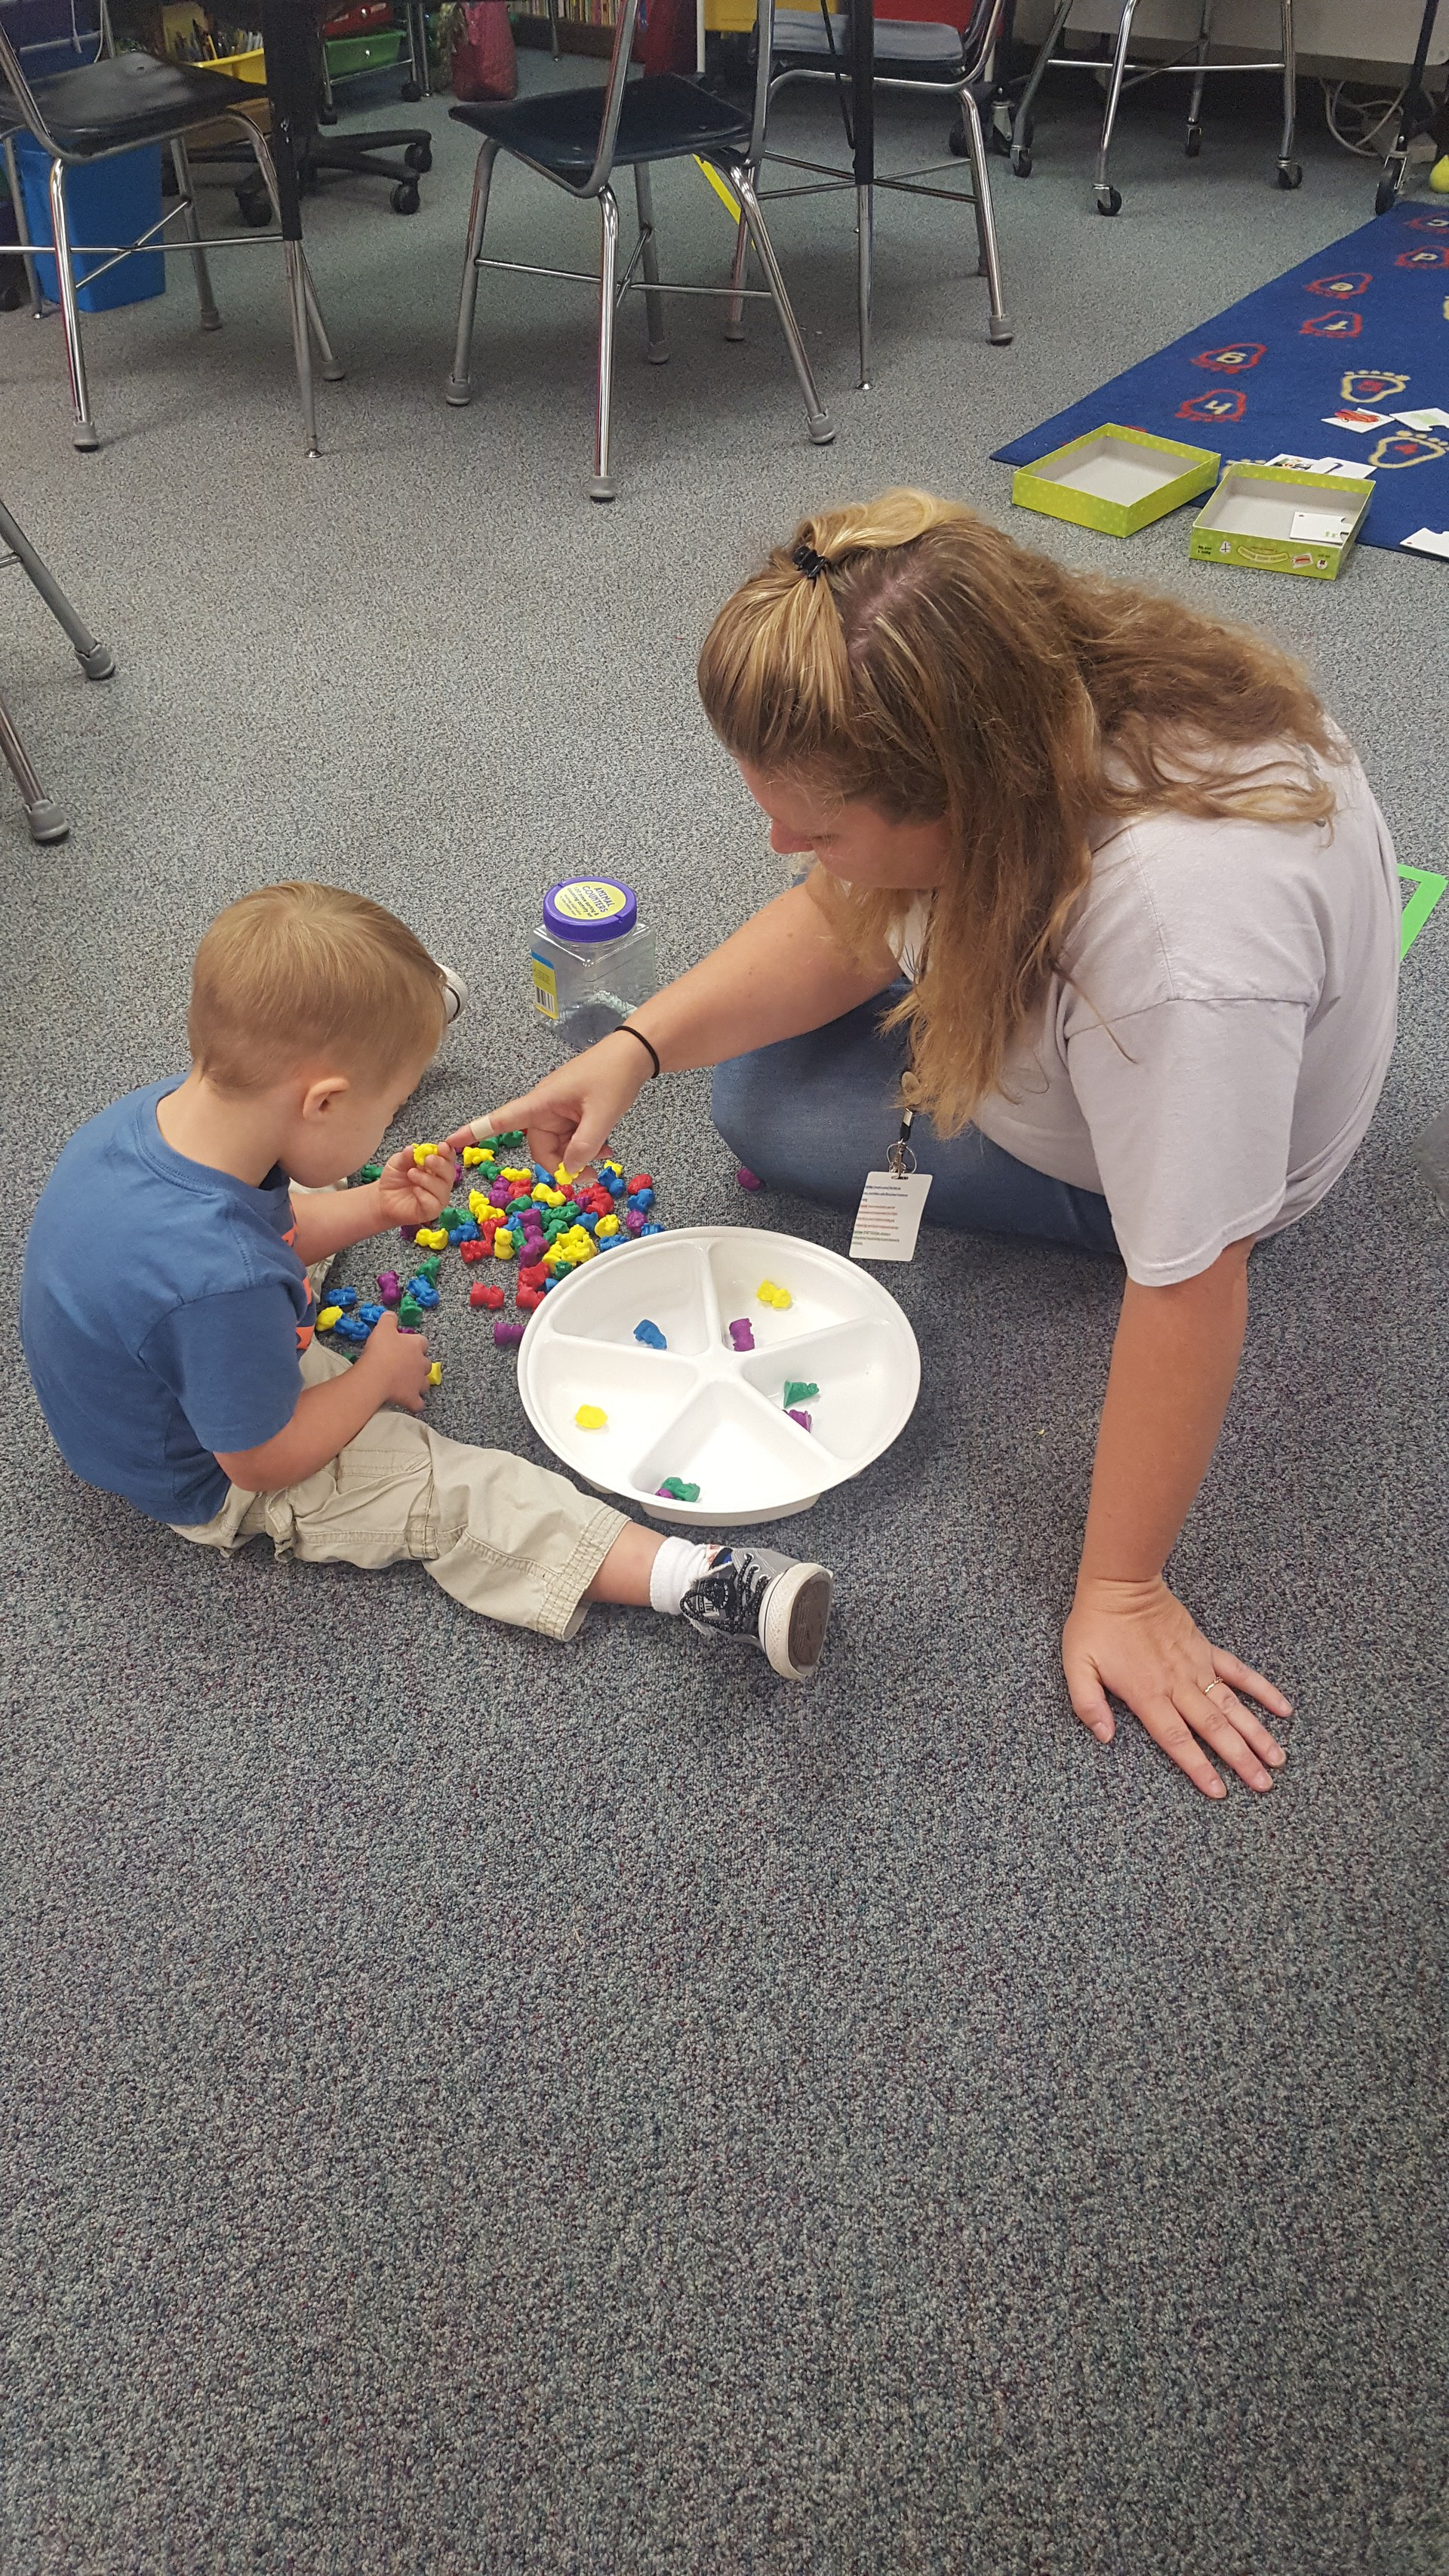 Dana Buie, on the floor instructing a student using manipulatives